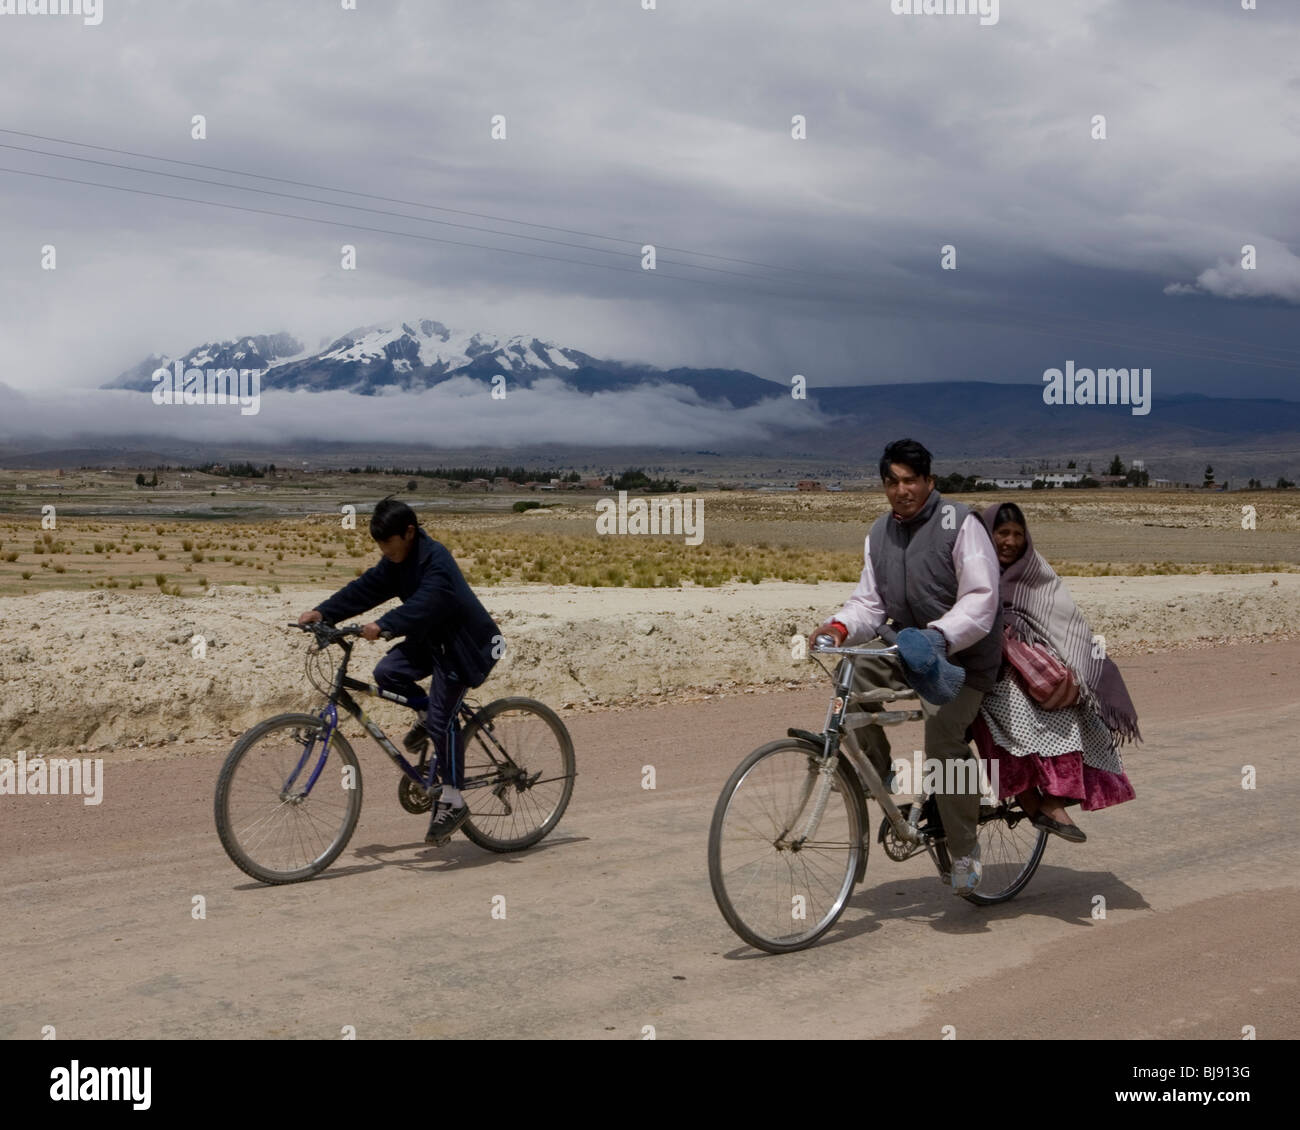 Locals bicycling home in the bolivian countryside with illampu mountain in the background - Stock Image